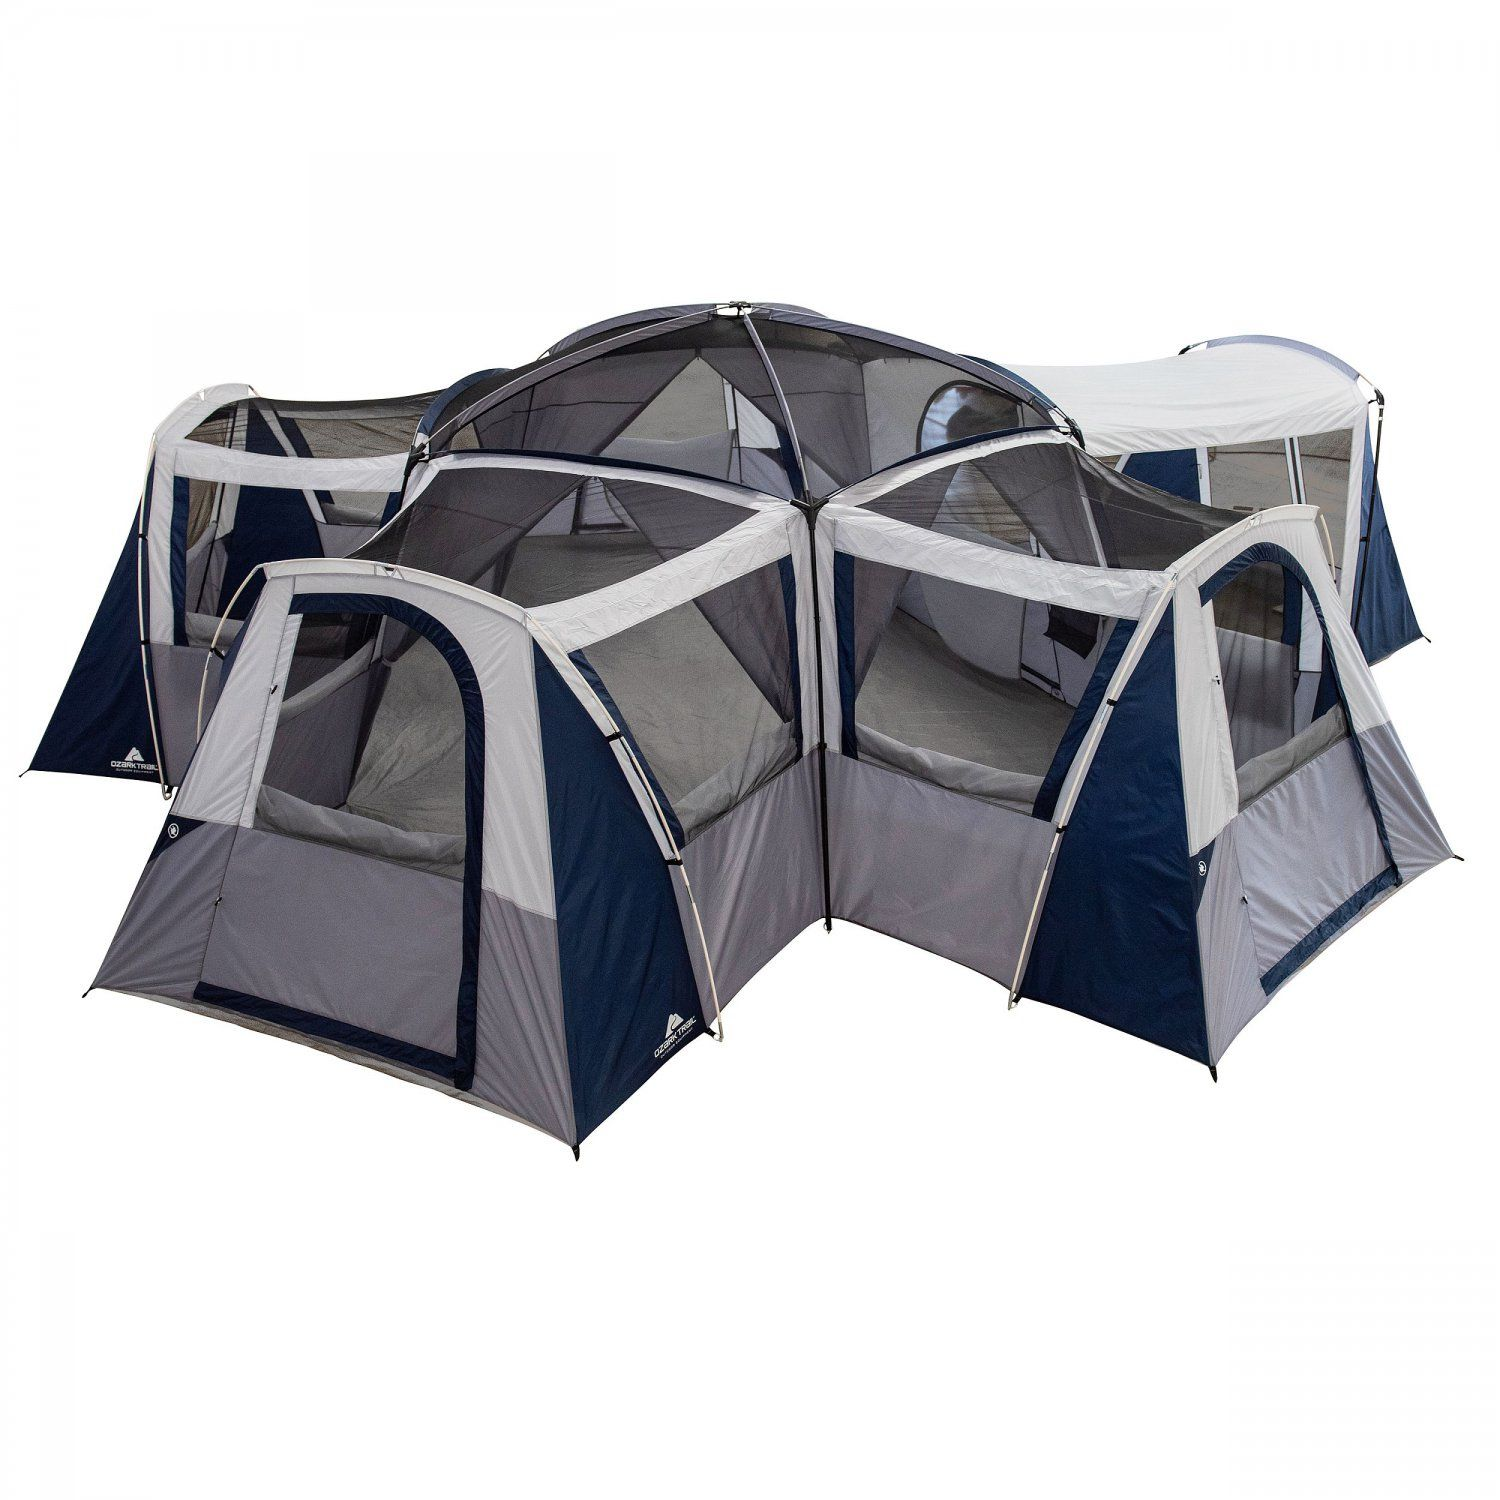 Ozark Trail Hazel Creek 20 Person Star Tent With Screen Room In 2021 Luxury Camping Tents Cool Tents Tent